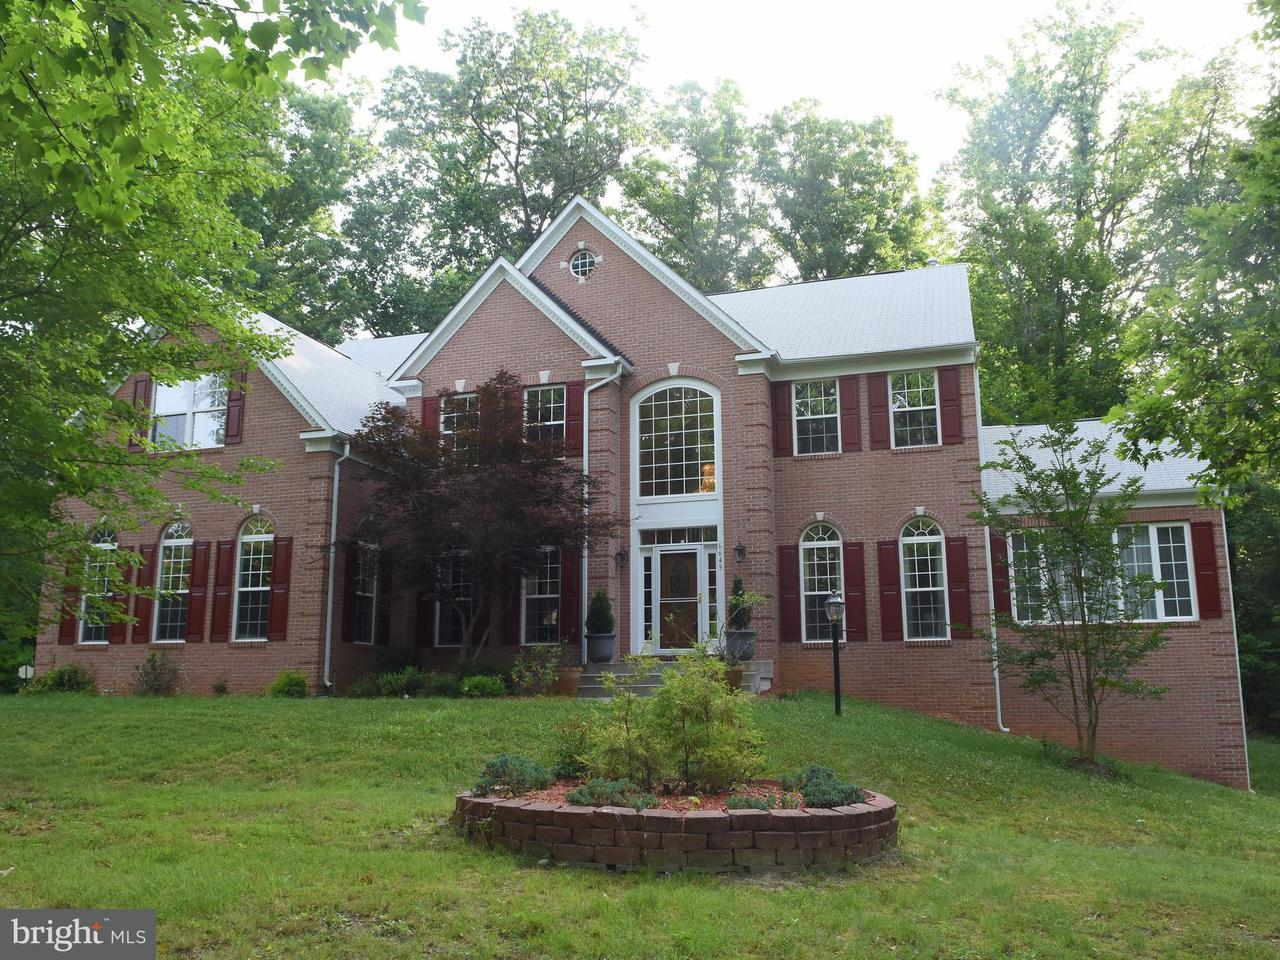 Single Family Home for Sale at 6649 TANSEY Drive 6649 TANSEY Drive Falls Church, Virginia 22042 United States